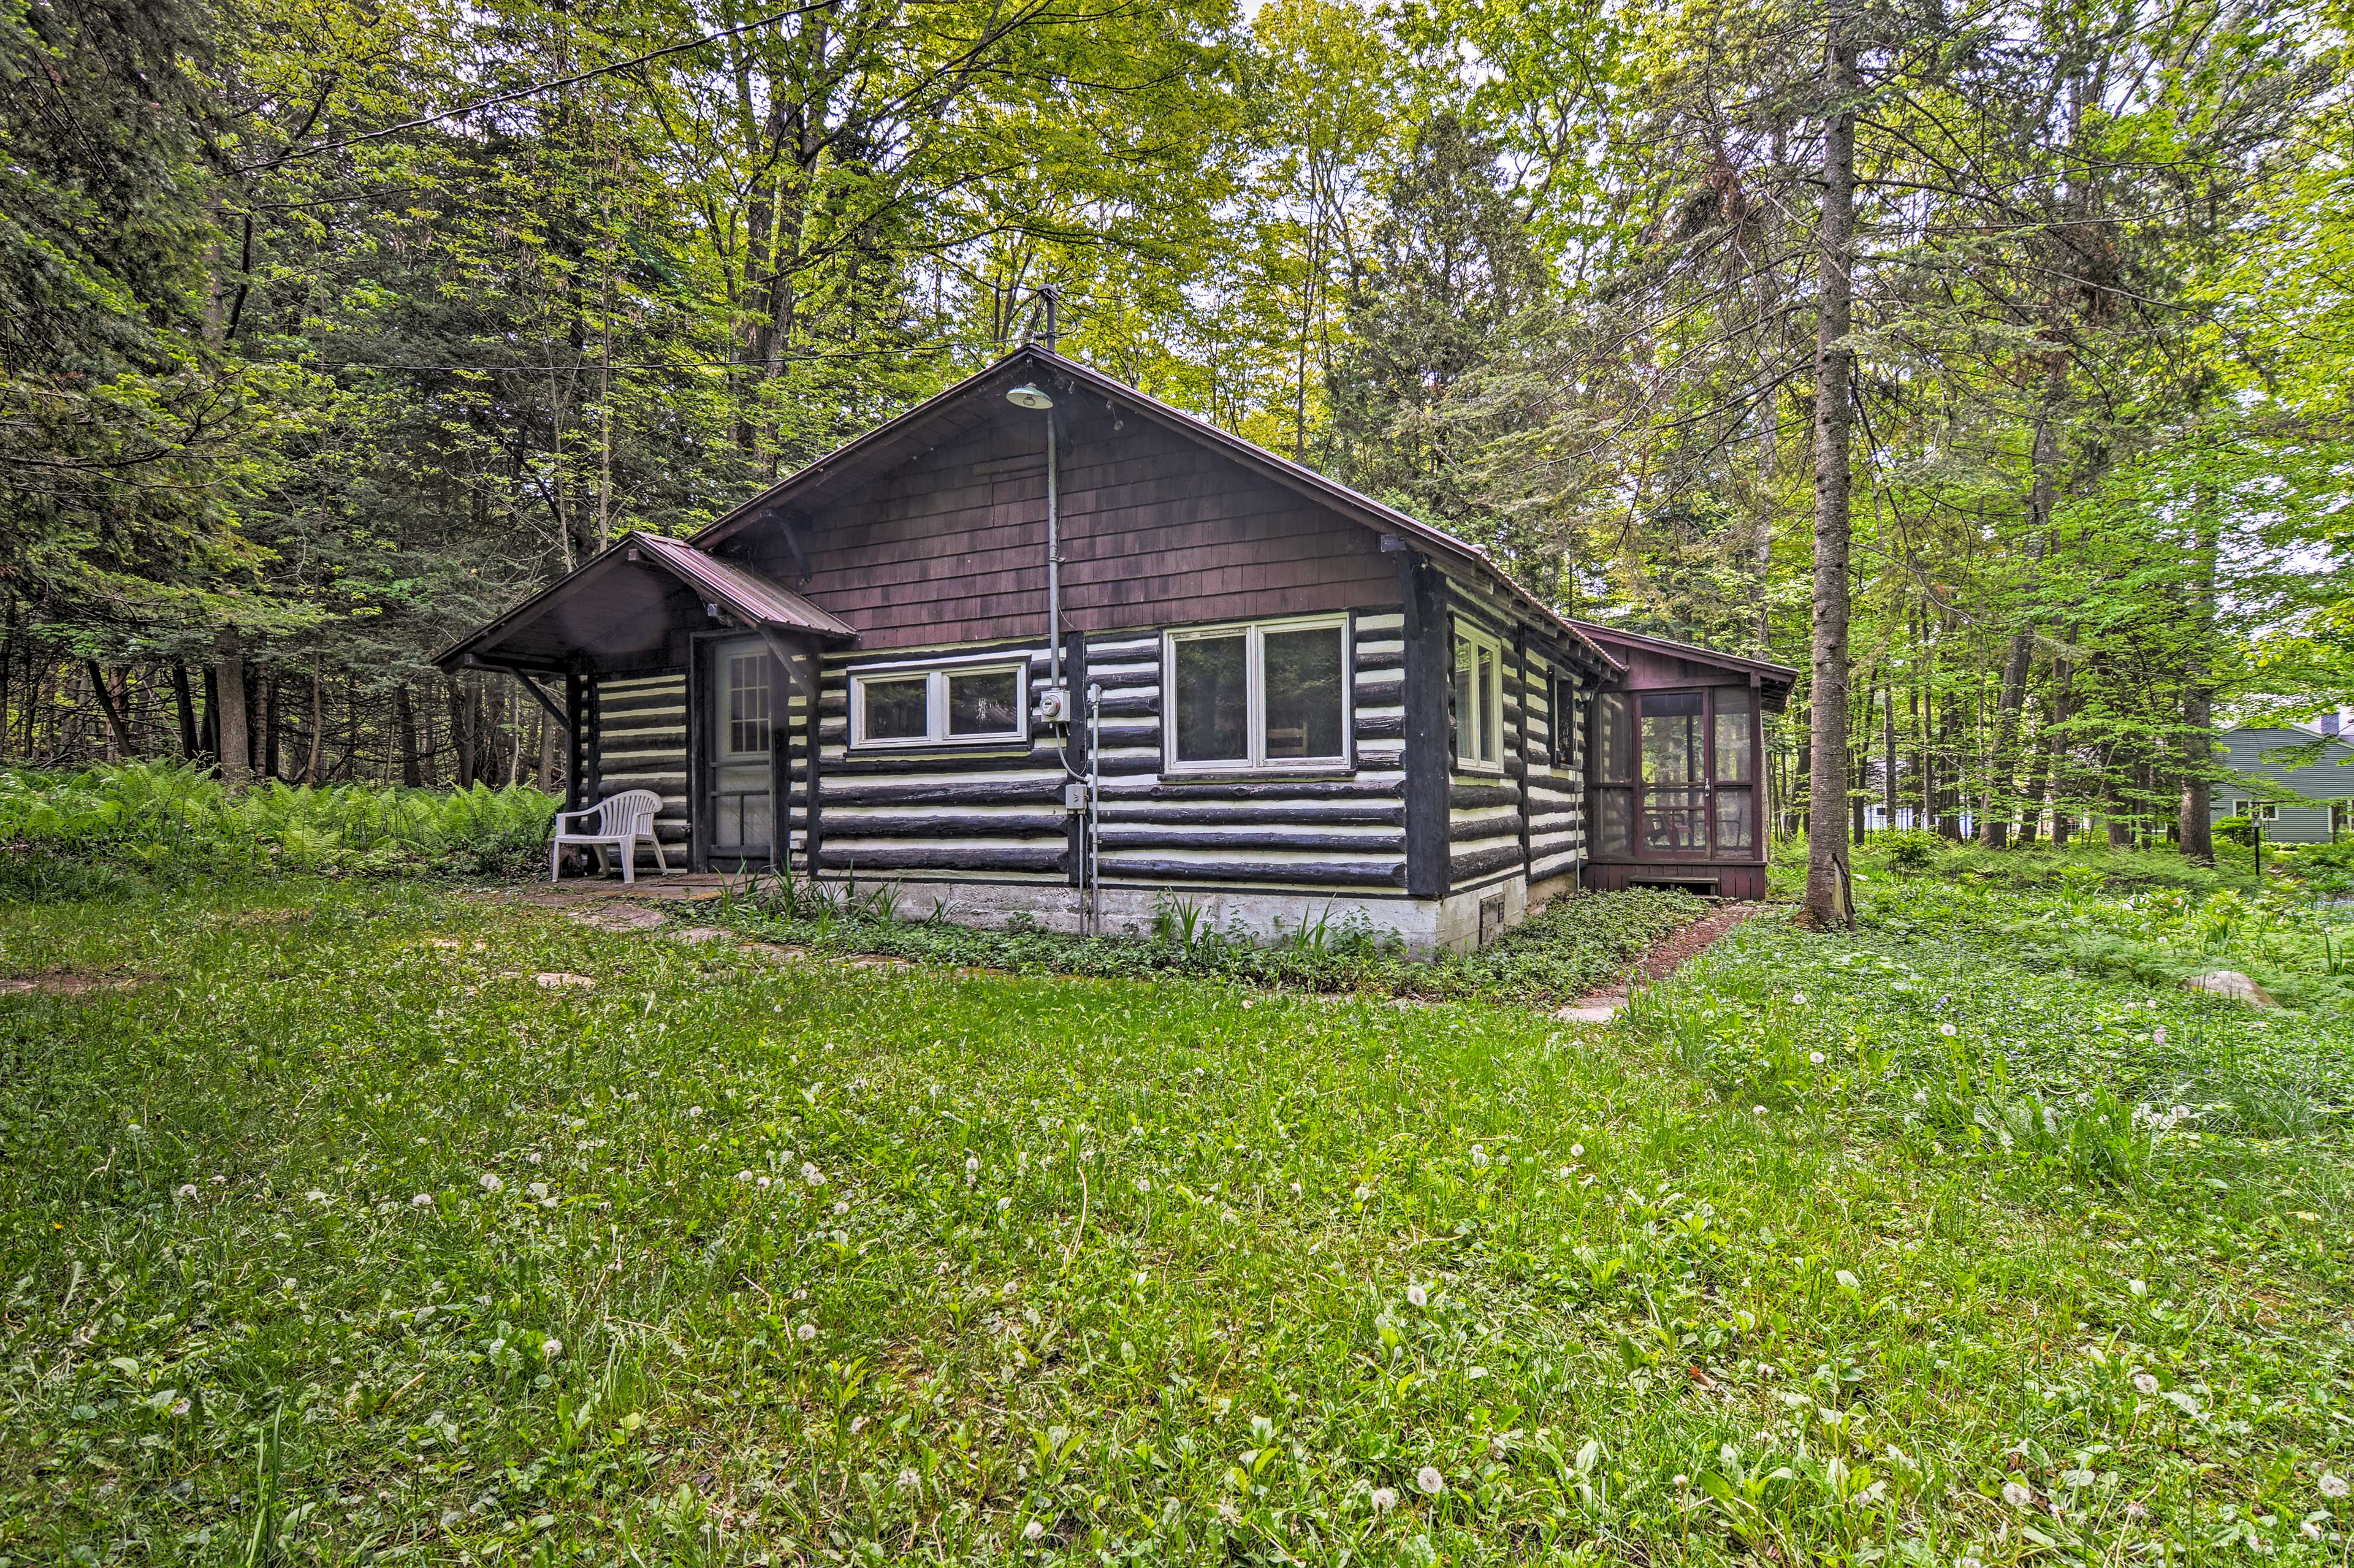 This rustic cabin is nestled in a wooded setting.